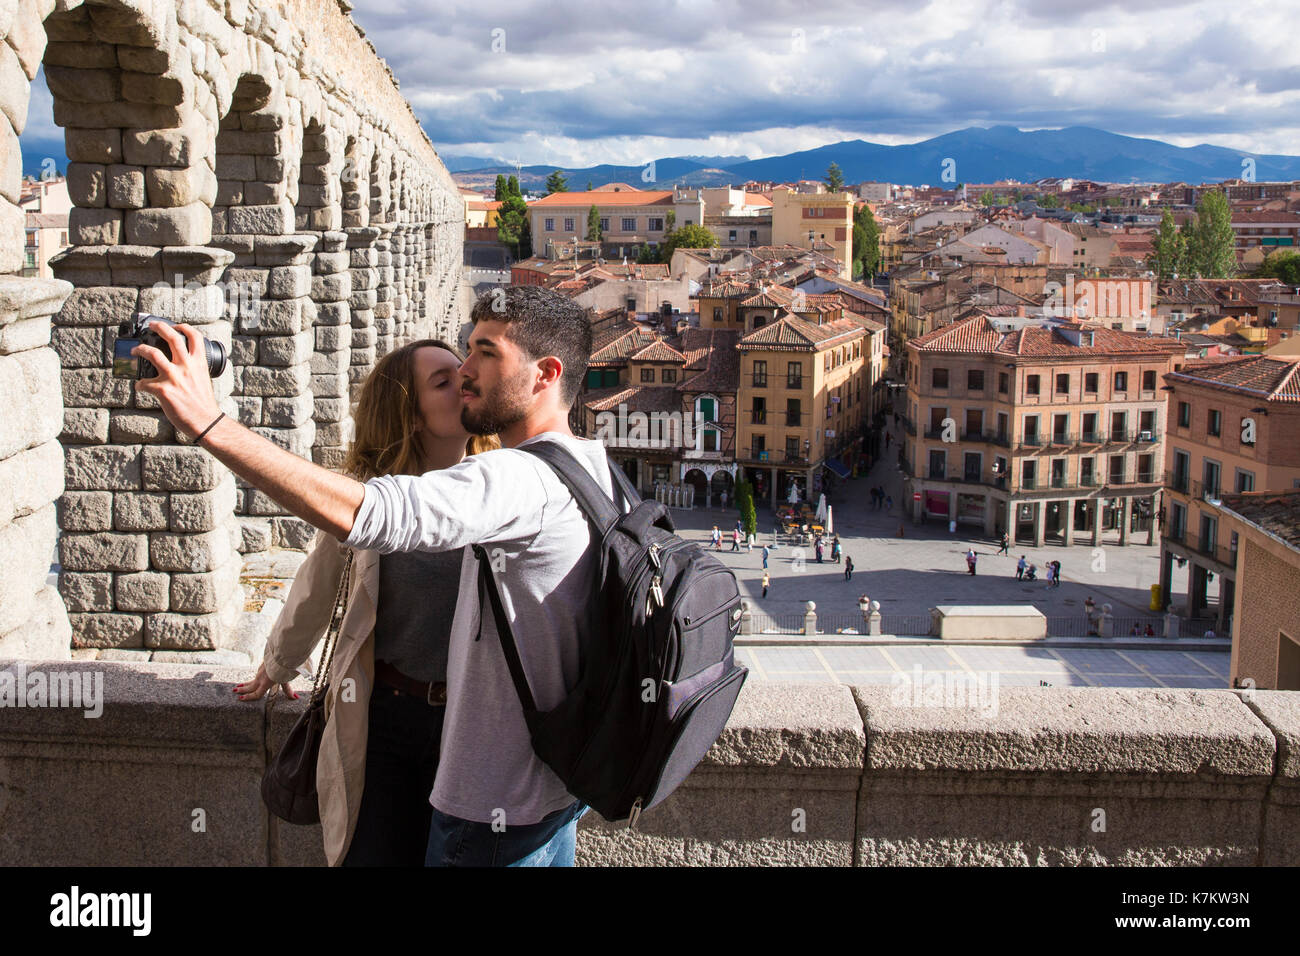 Tourist couple taking selfie photographs with SLR camera at famous spectacular Roman aqueduct, Segovia, Spain - Stock Image